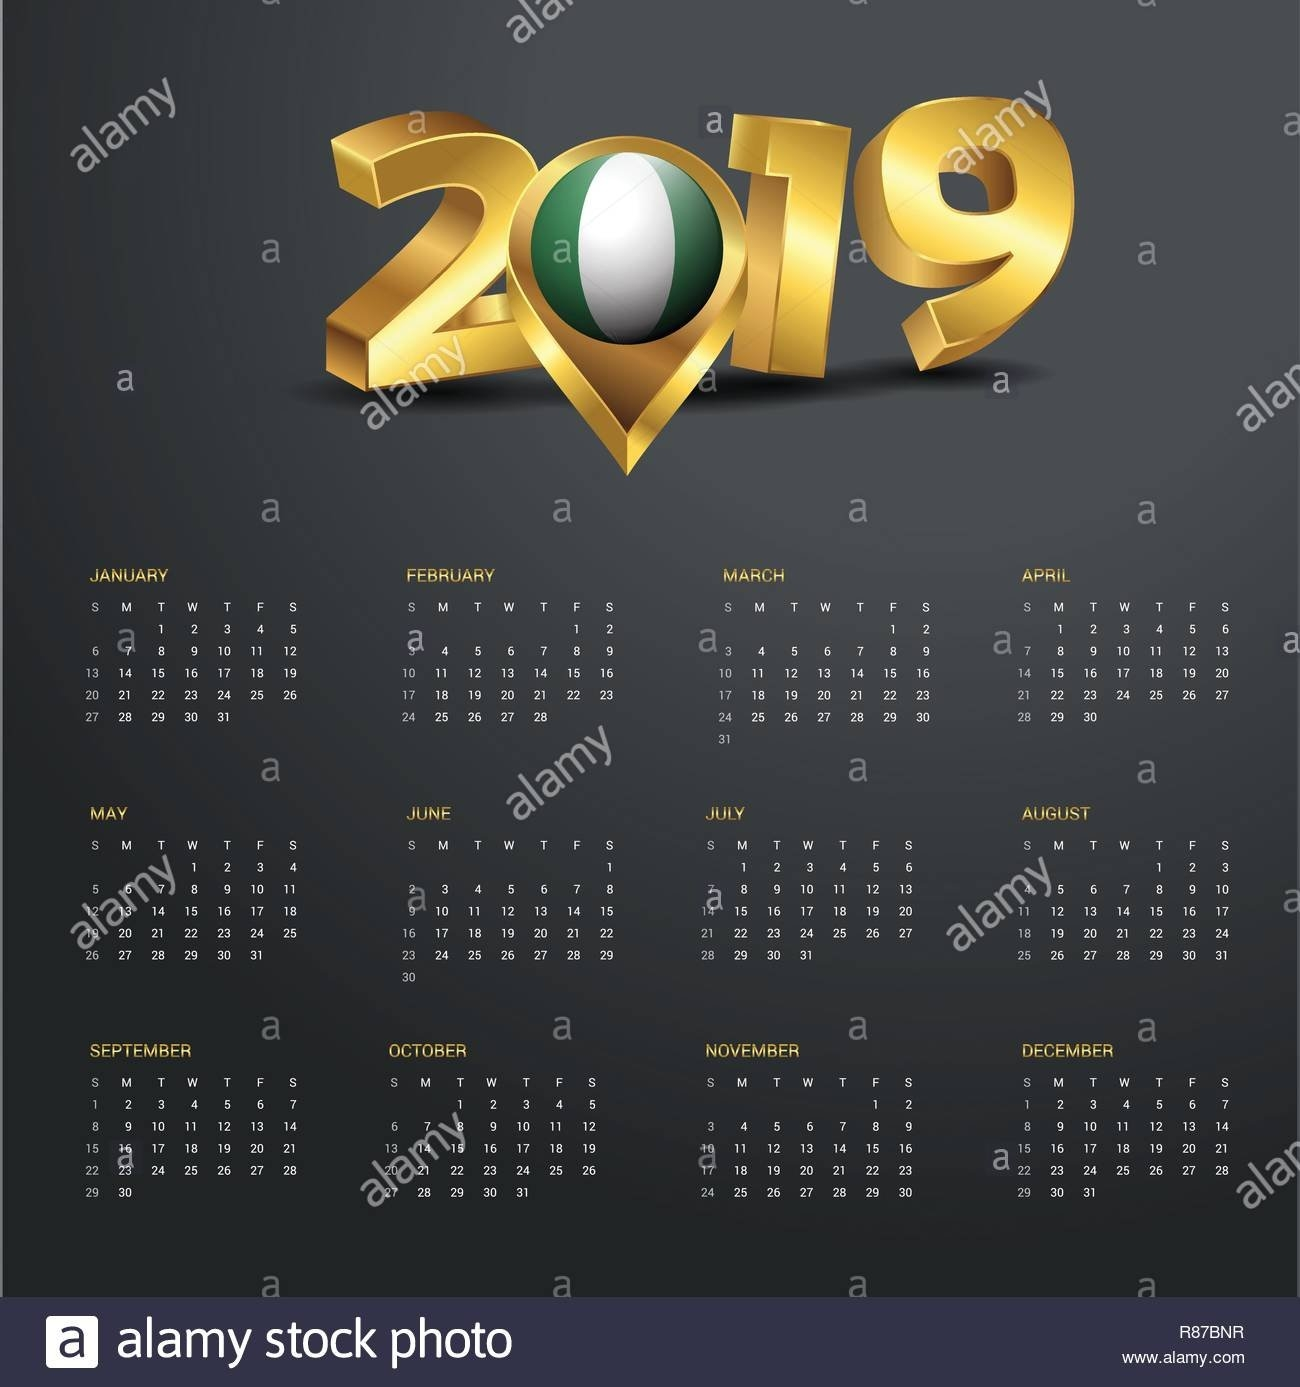 2019 Calendar Template. Nigeria Country Map Golden Typography Header Calendar 2019 Nigeria